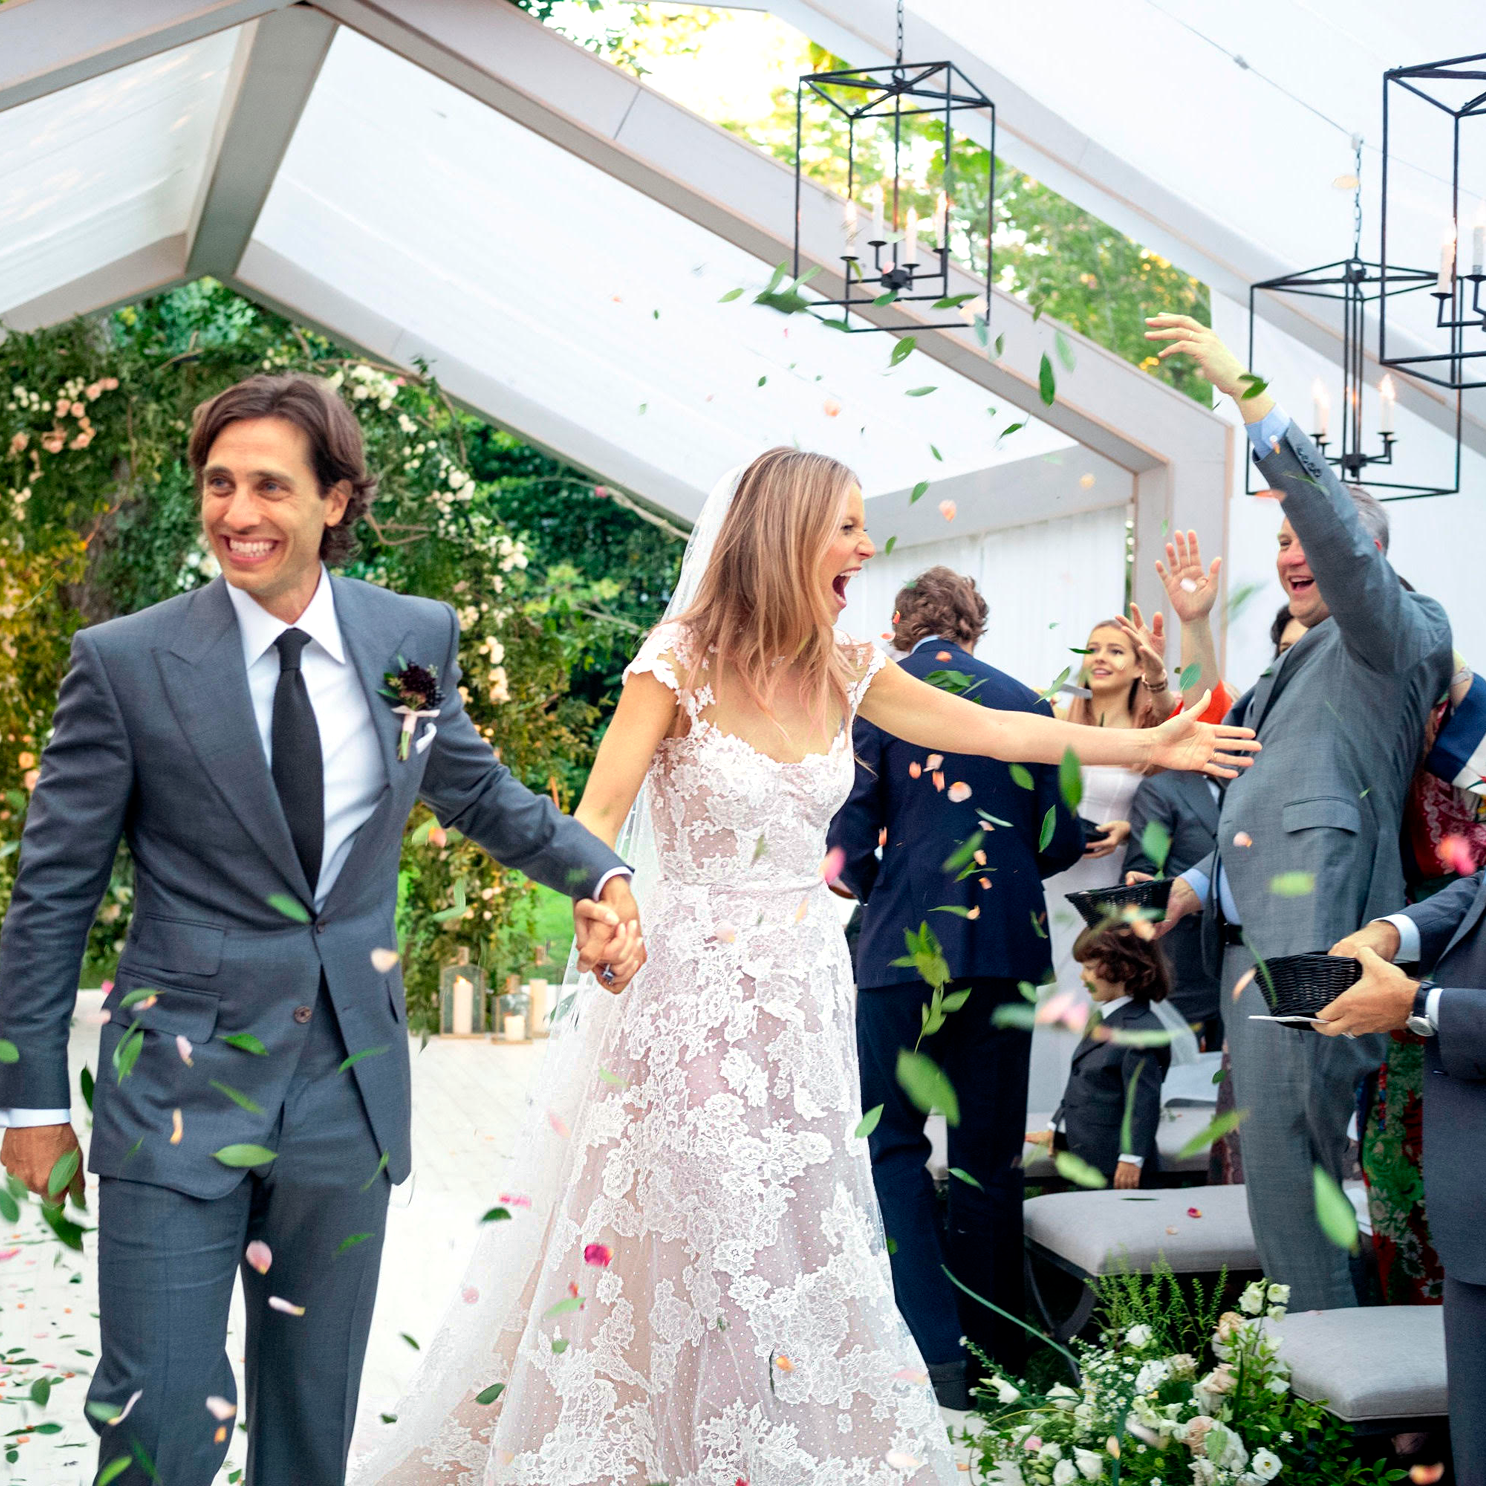 Gwyneth Paltrow's Husband Brad Falchuk Referenced Shakespeare in Love During His Wedding Vows